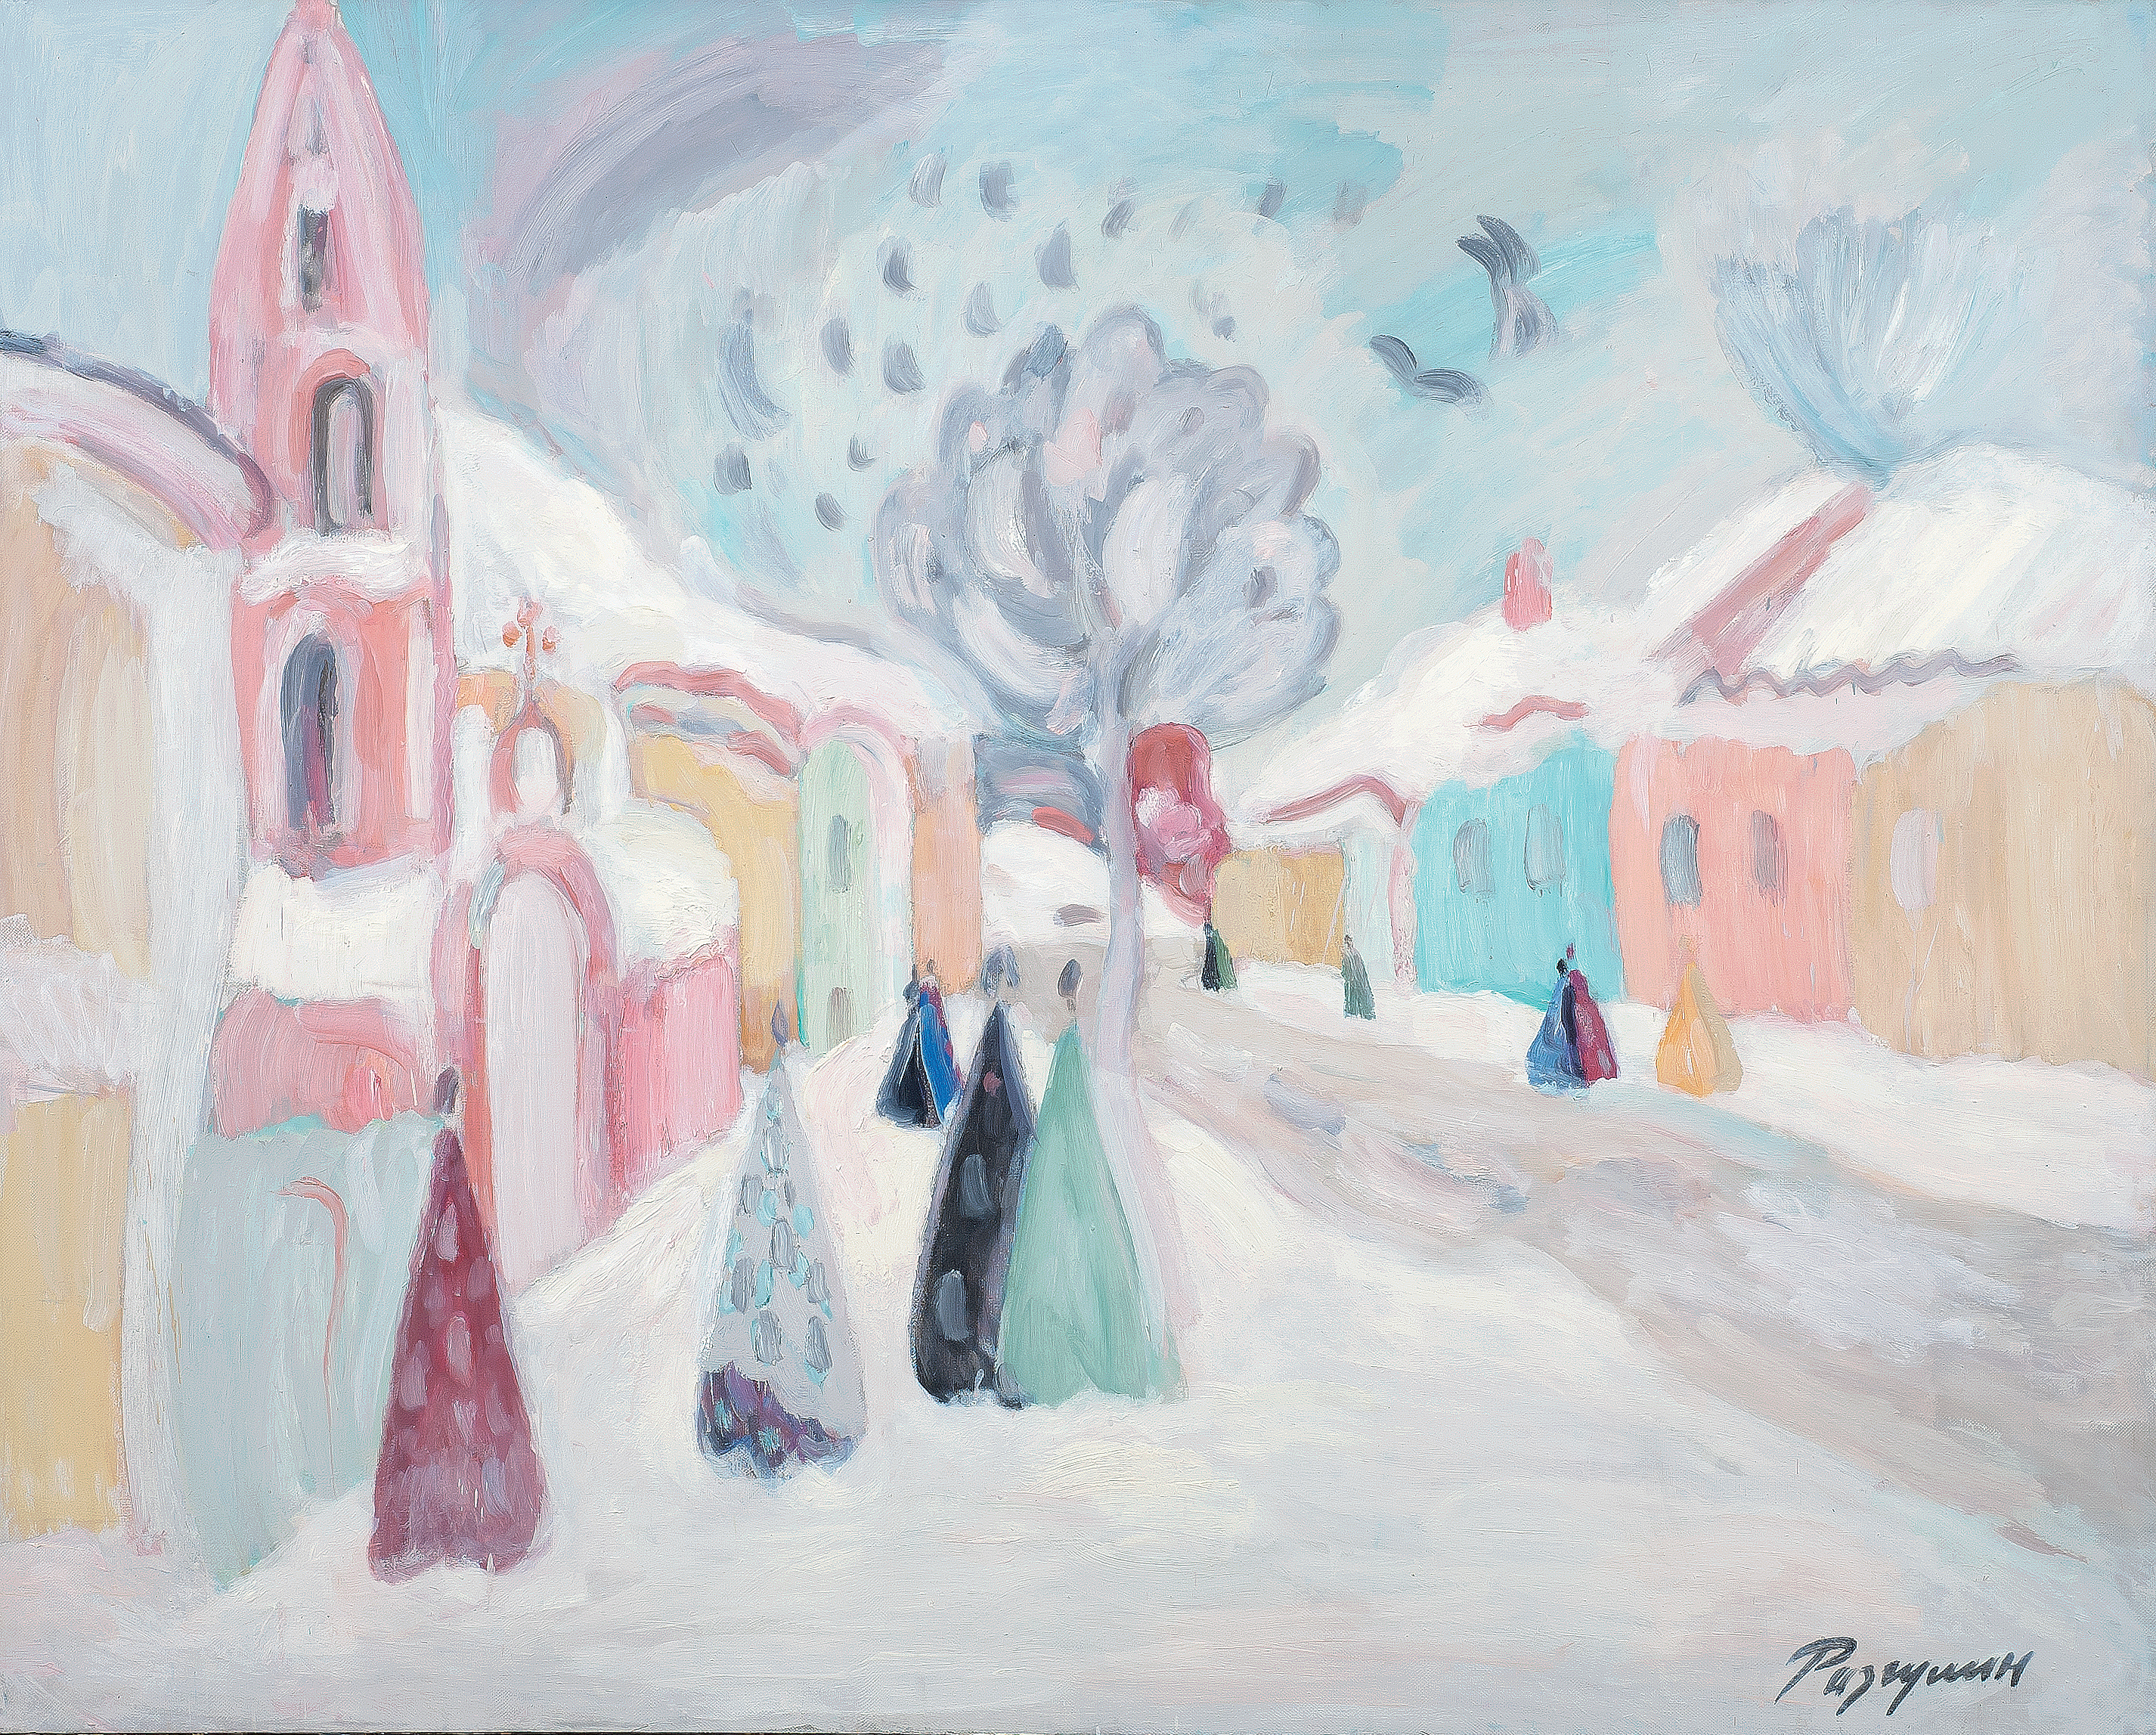 Painting for all. Exhibition in the Tobolsk Museum 40